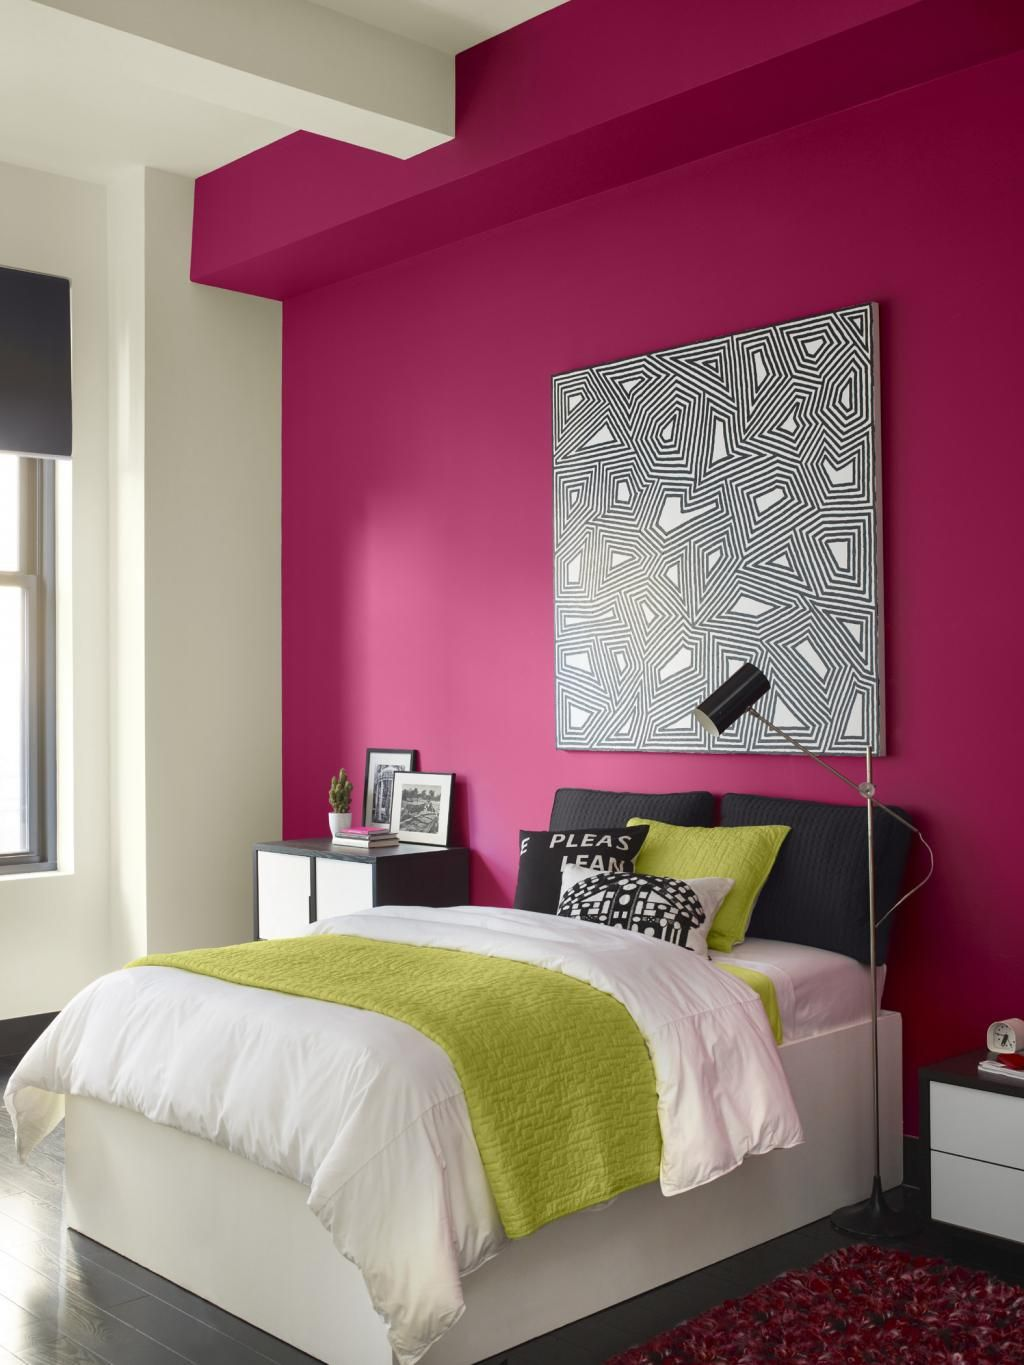 interior design teen bedroom color combination with bright pink white color tapja bright sunset coloured bedroom - Bedrooms Color